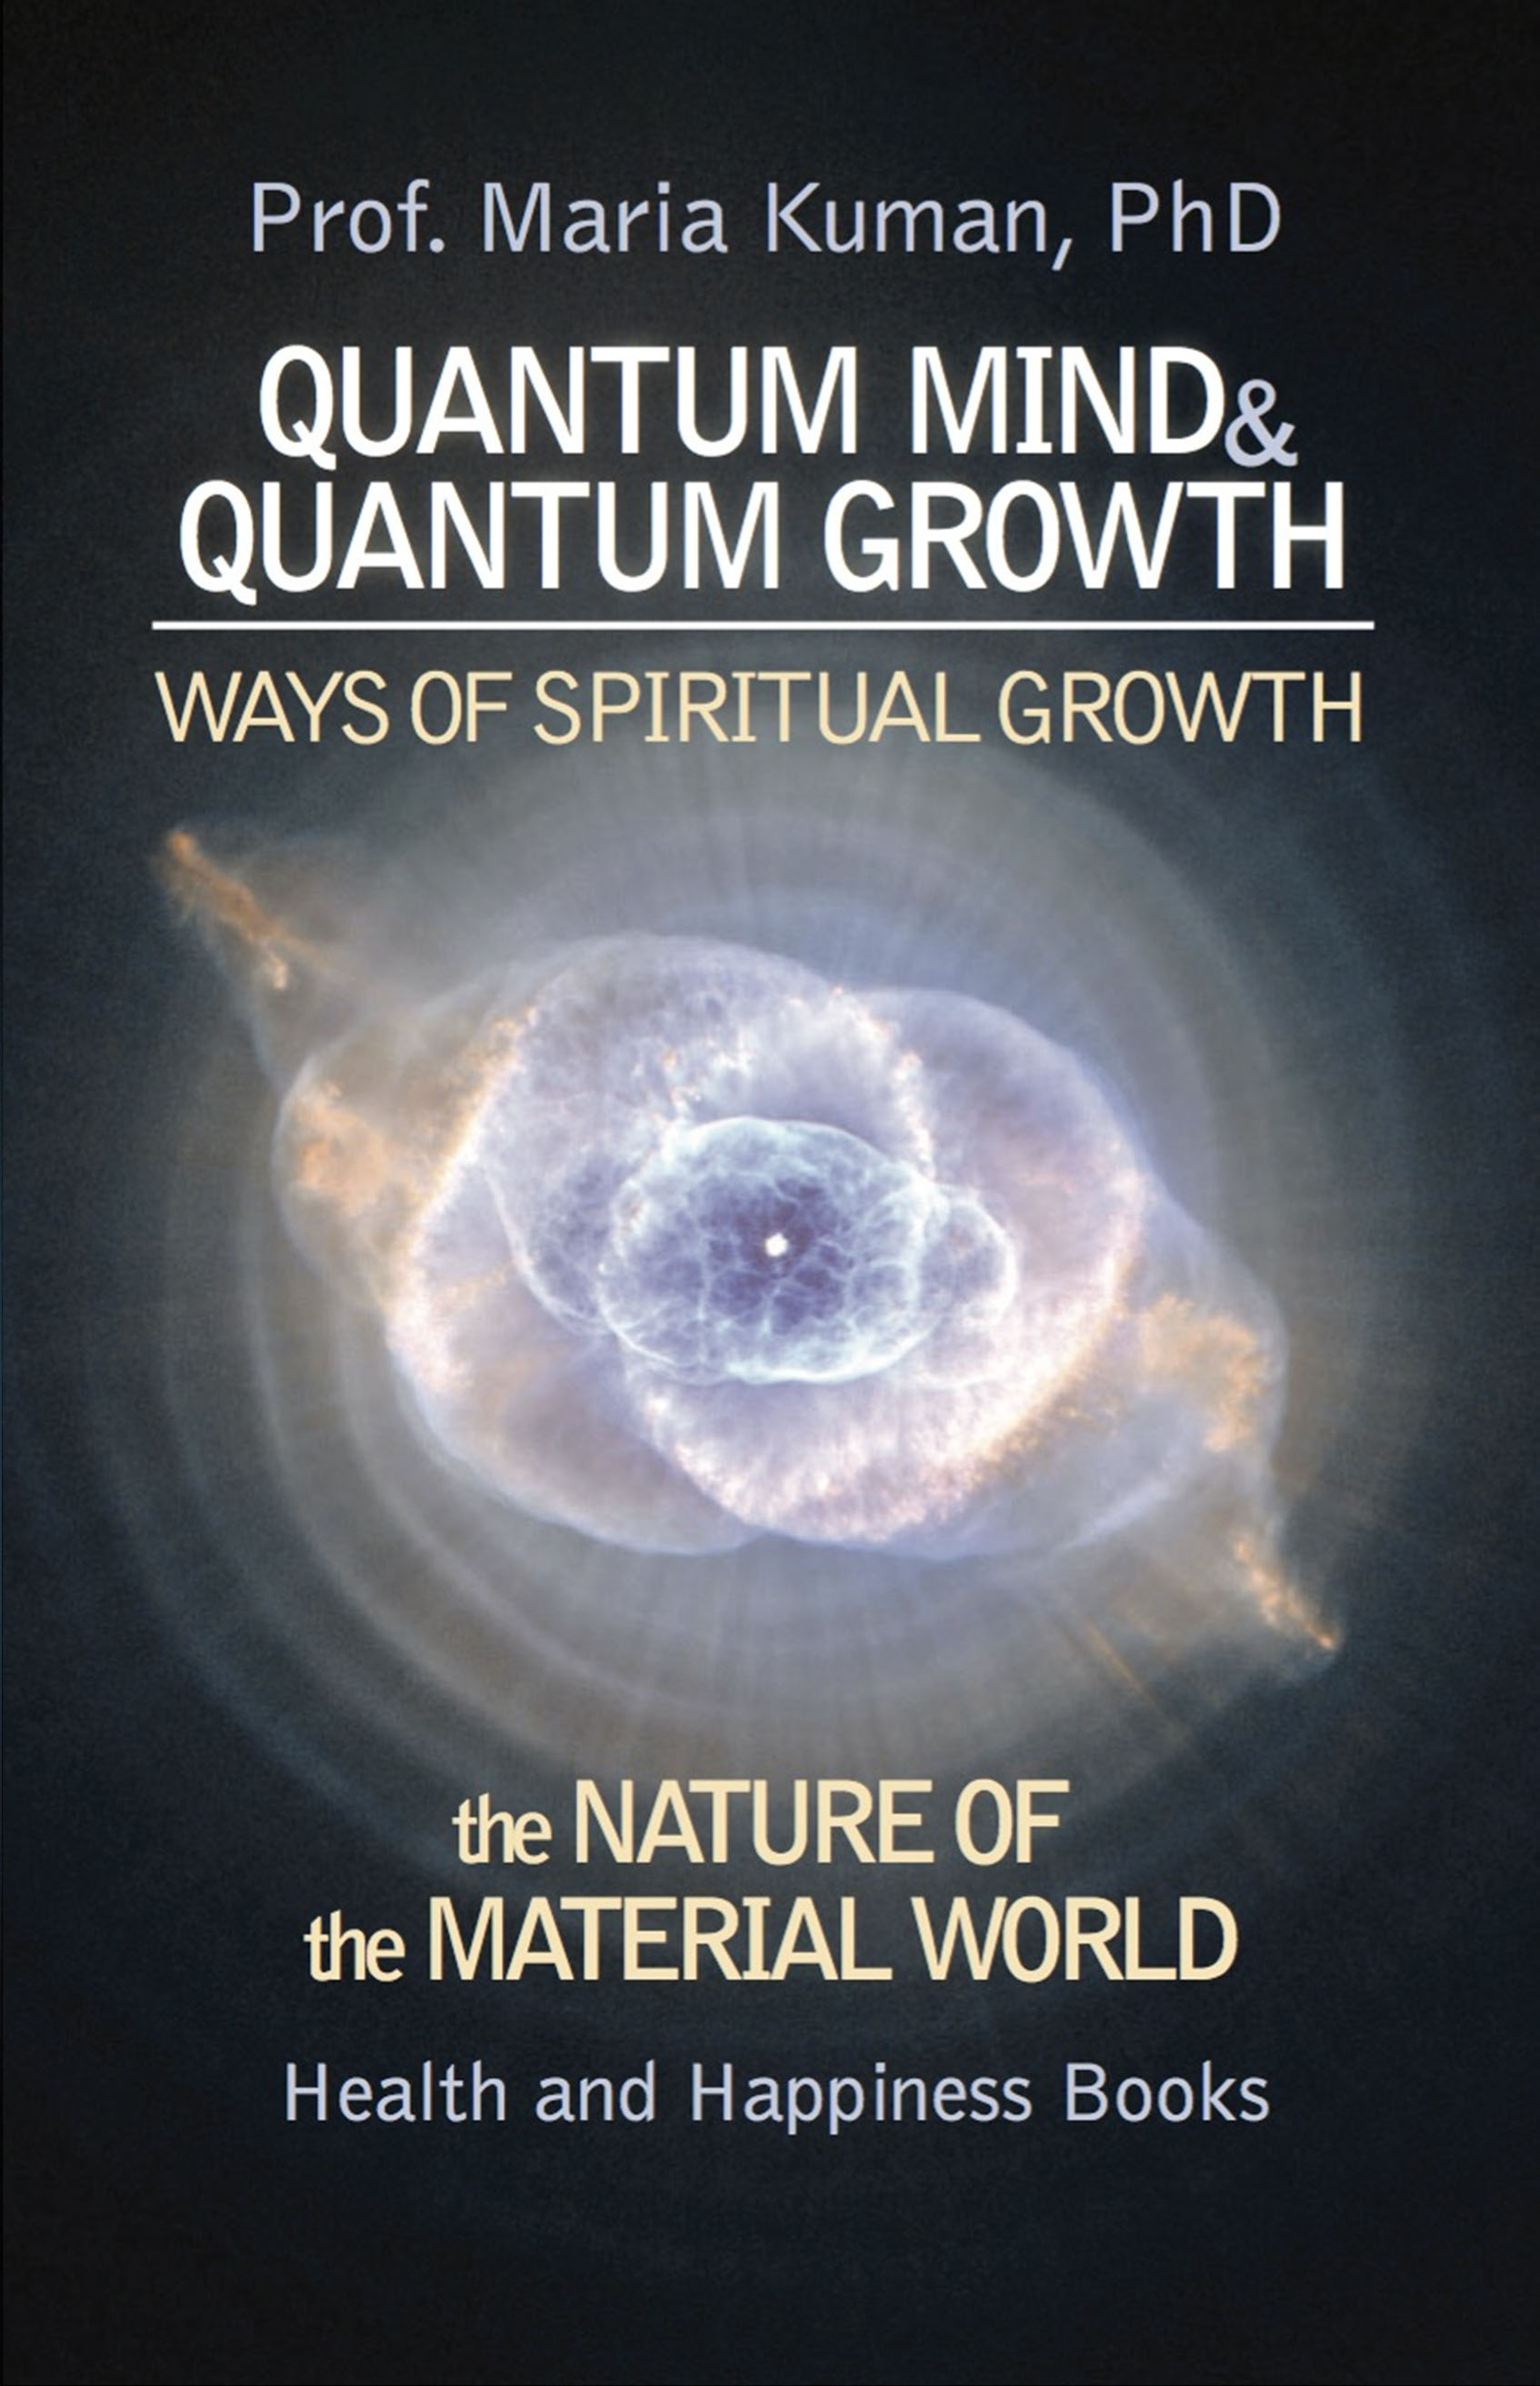 Image of the cover of Quantum Mind and Quantum Growth